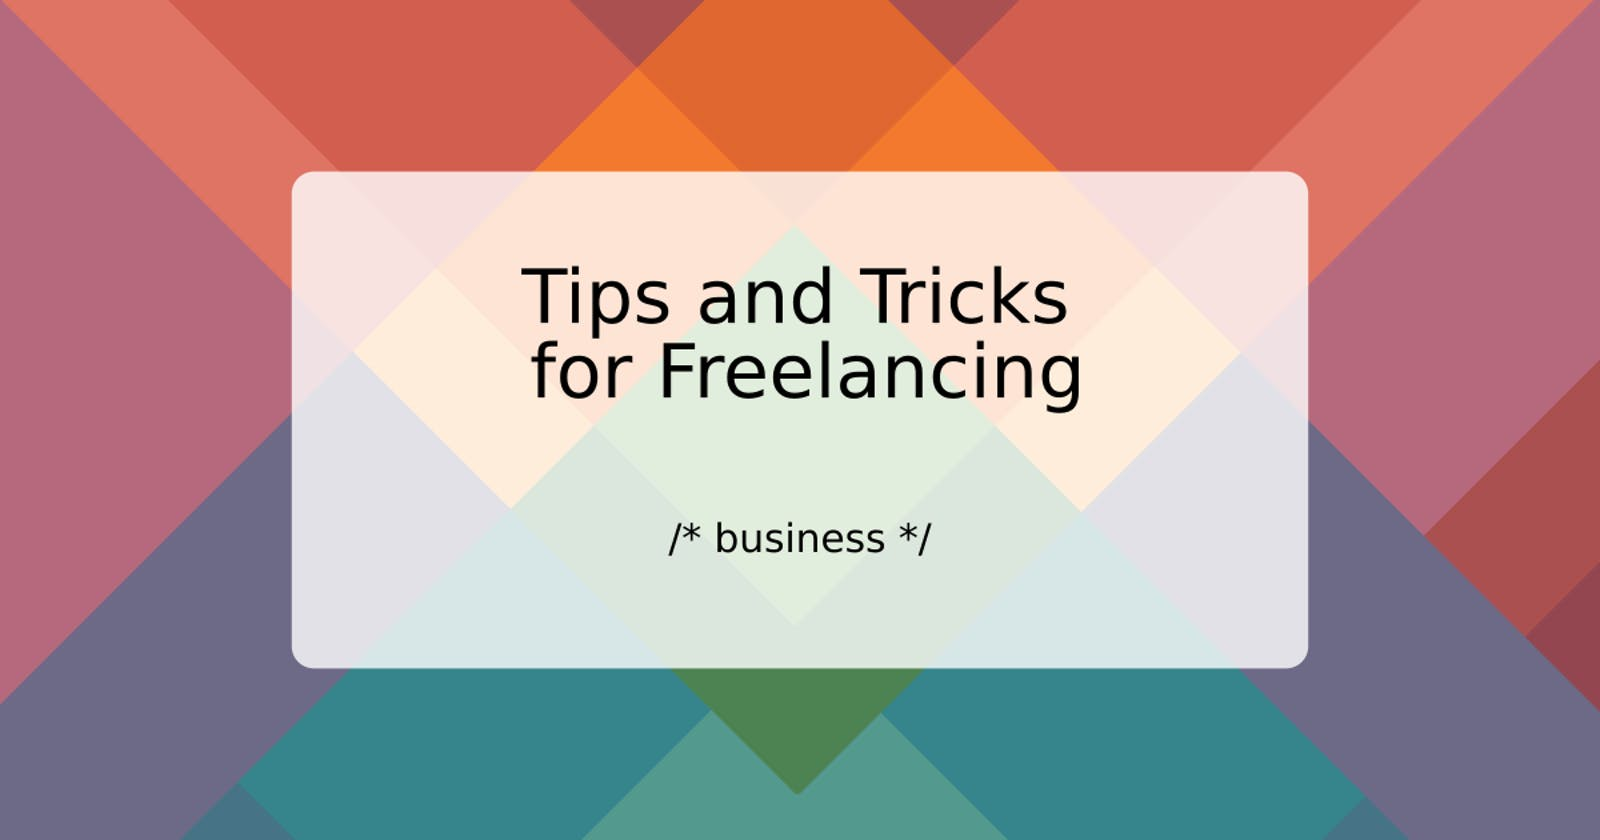 Tips and Tricks for Freelancing